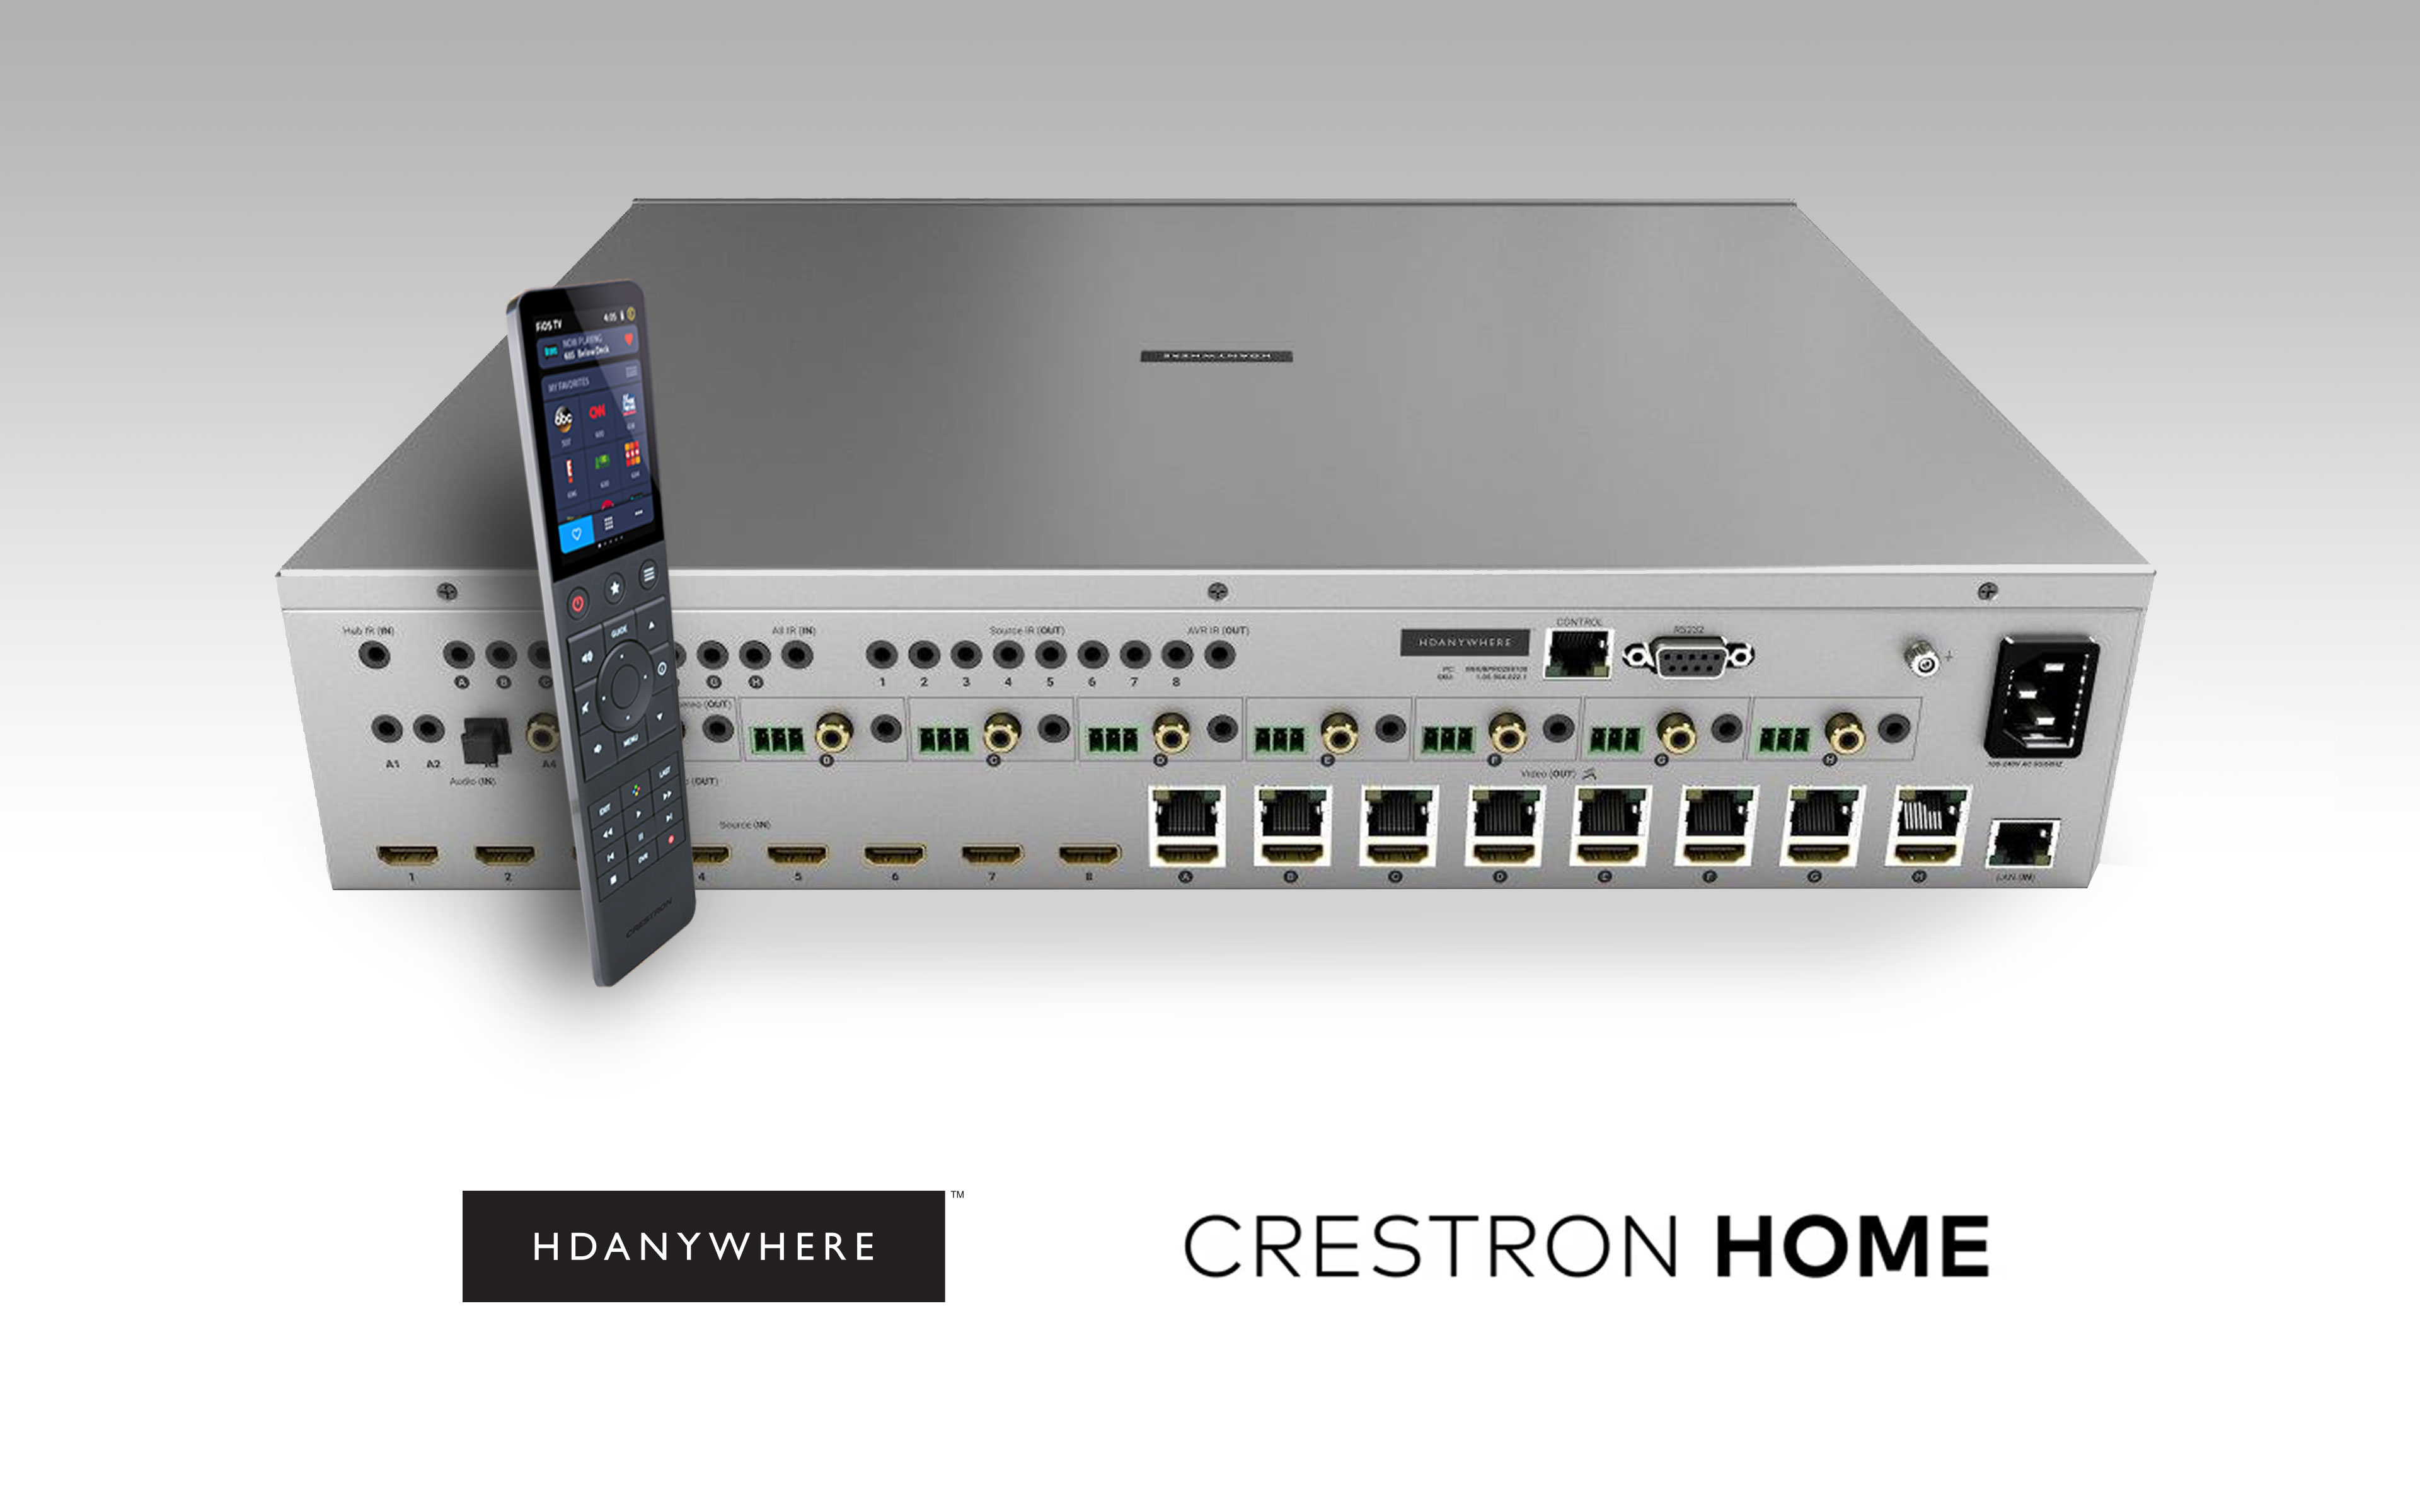 crestron home hero